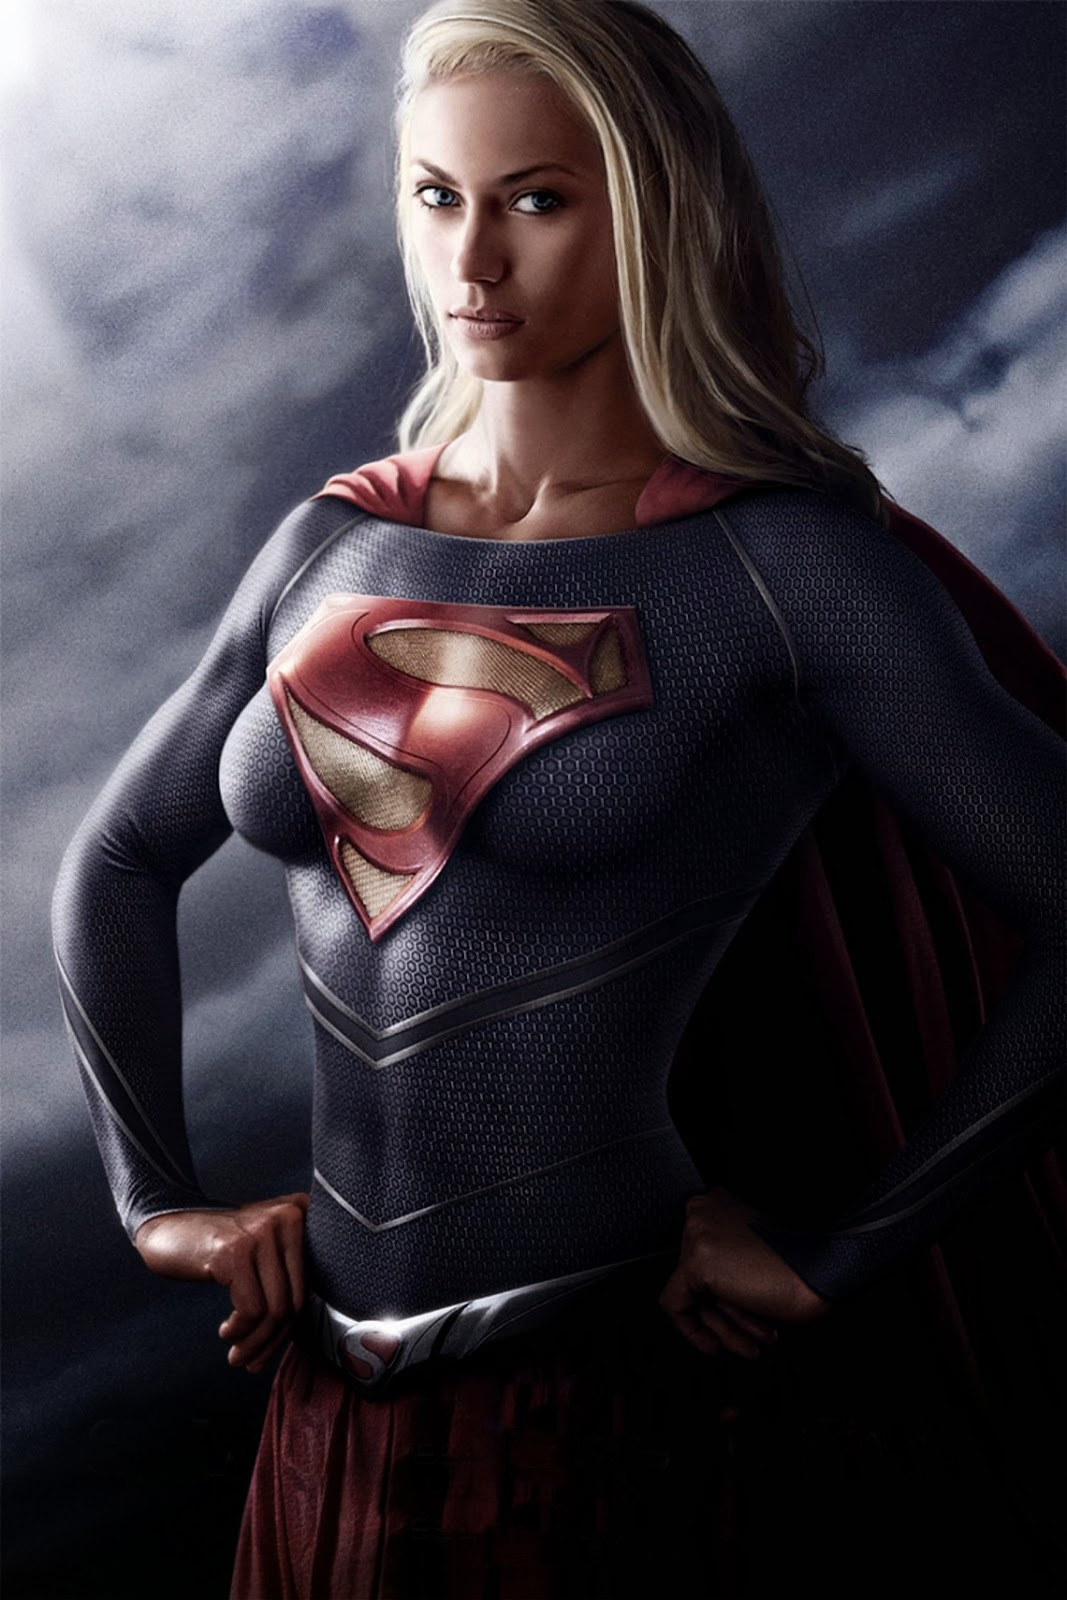 Supergirl hot pictures